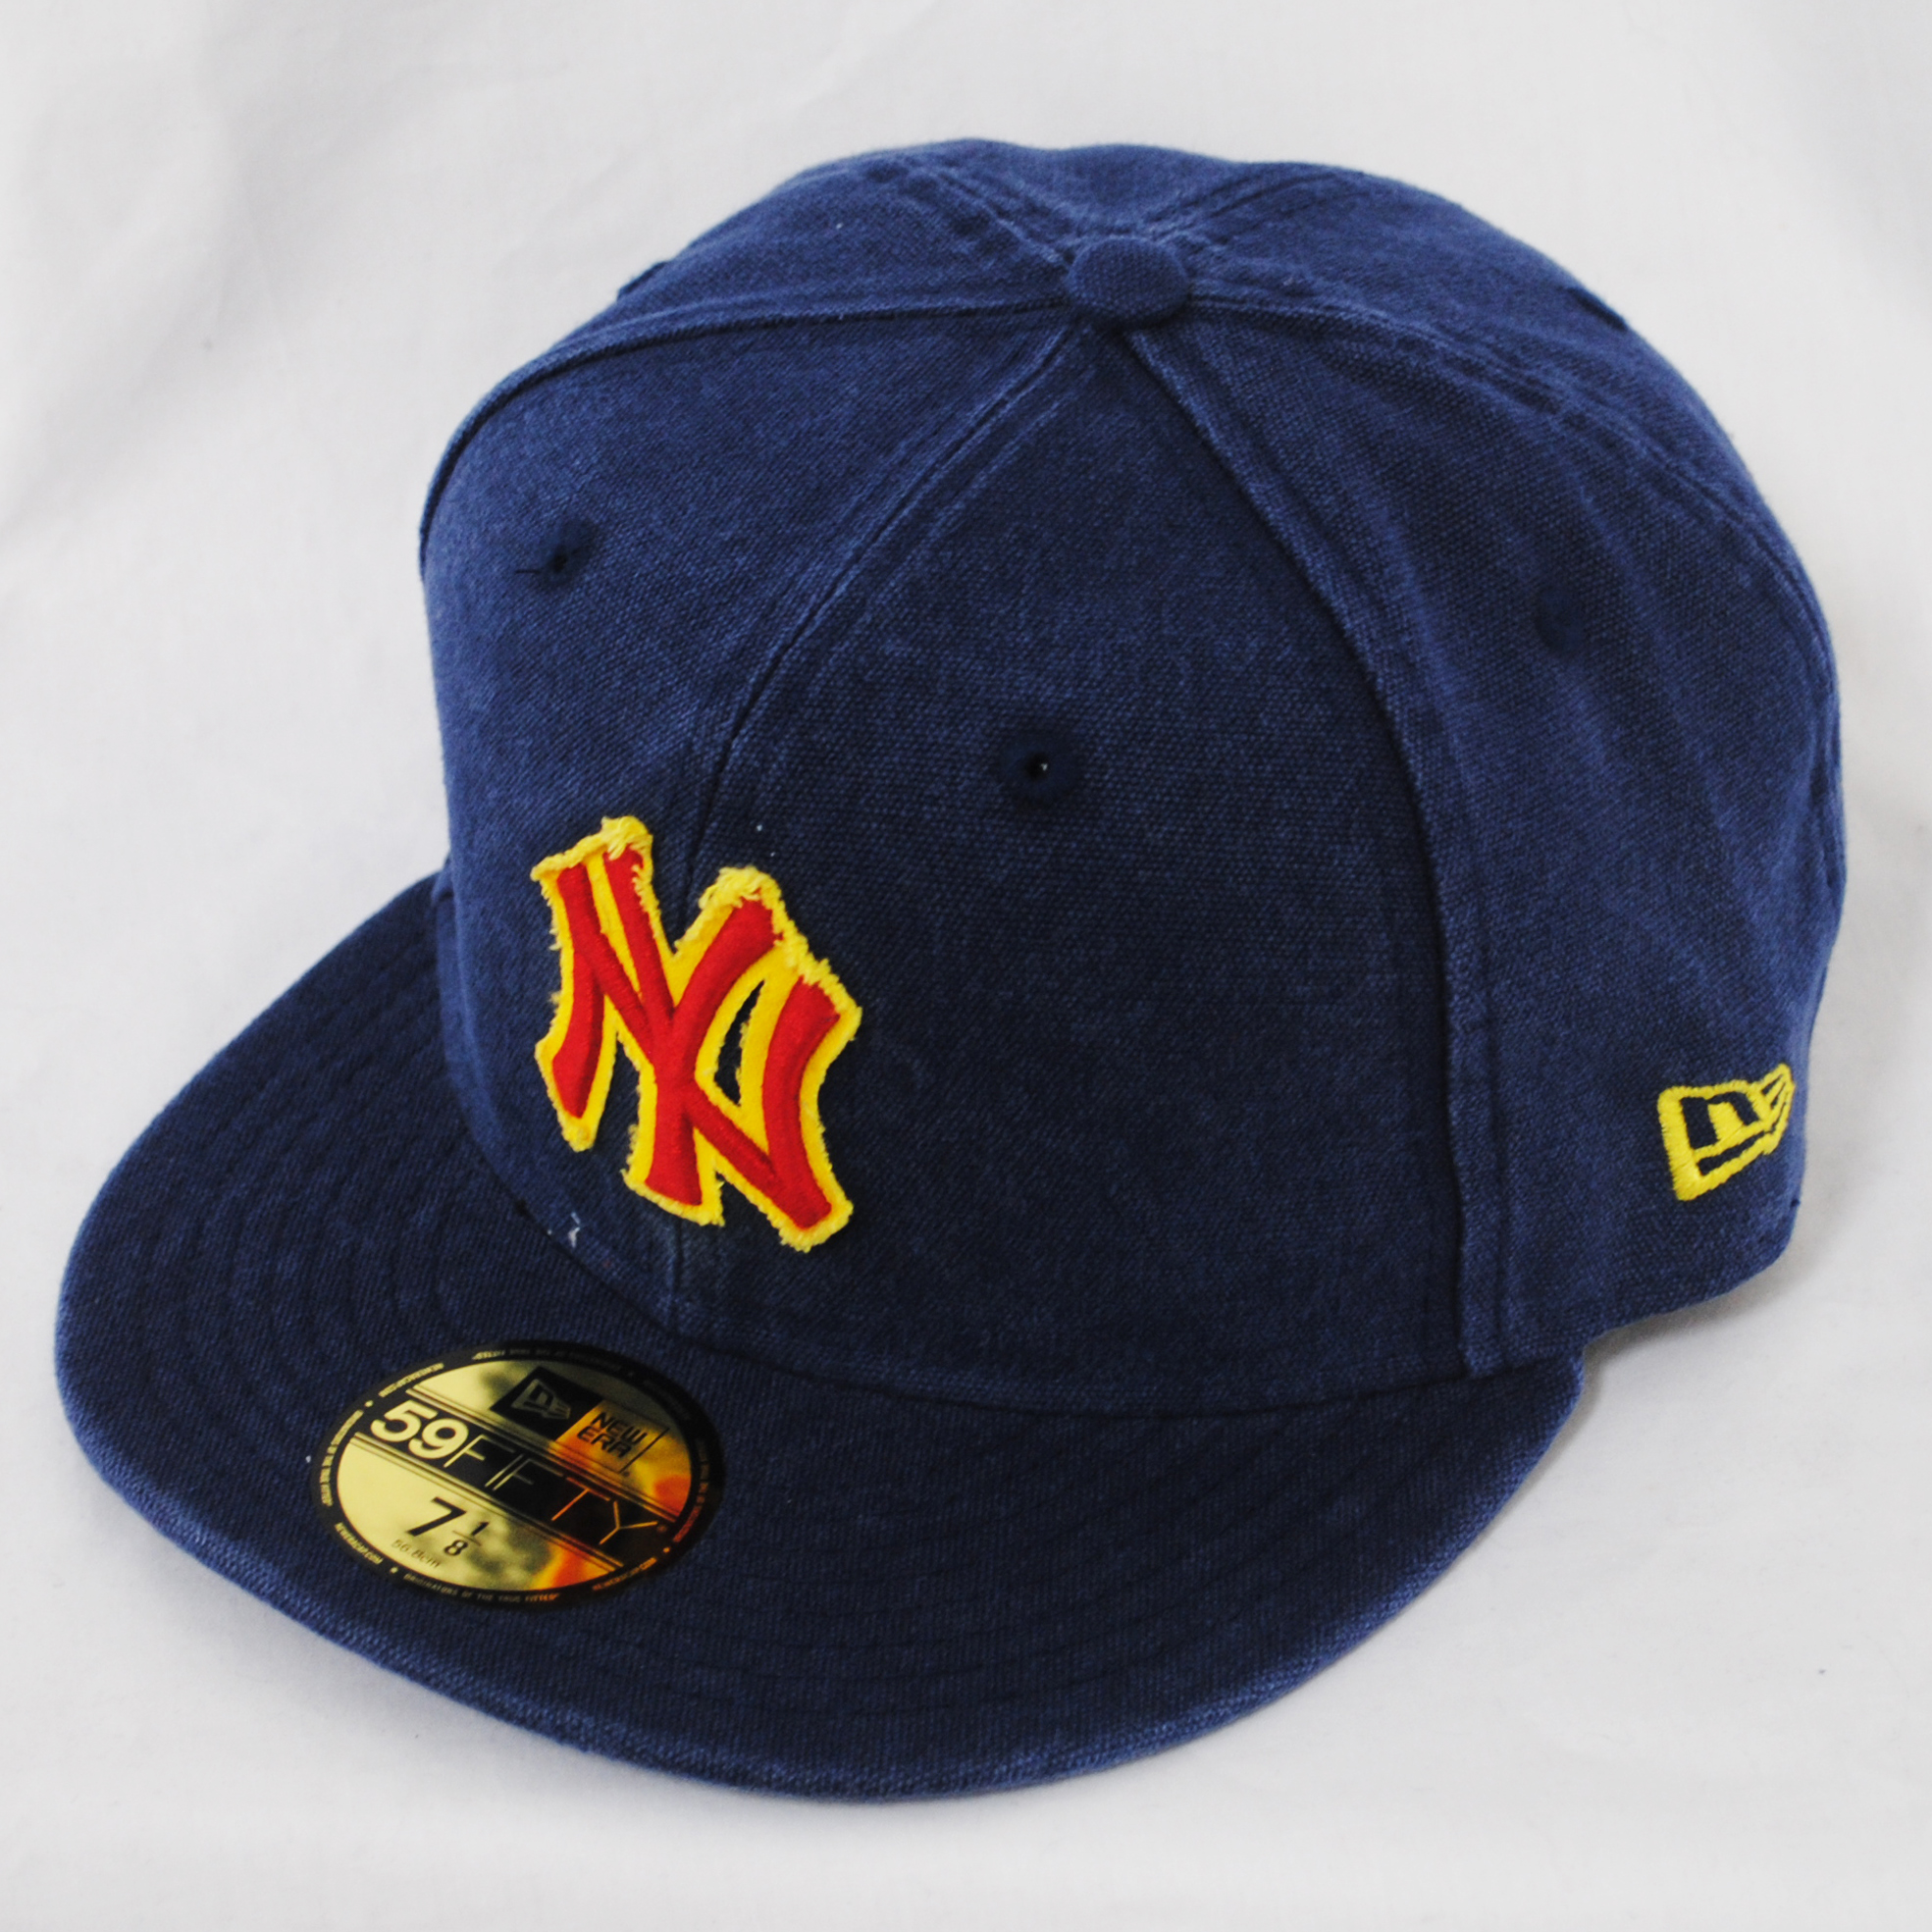 New Era 59fifty Ny Yankees Canvas Wash Blue Fitted Flat